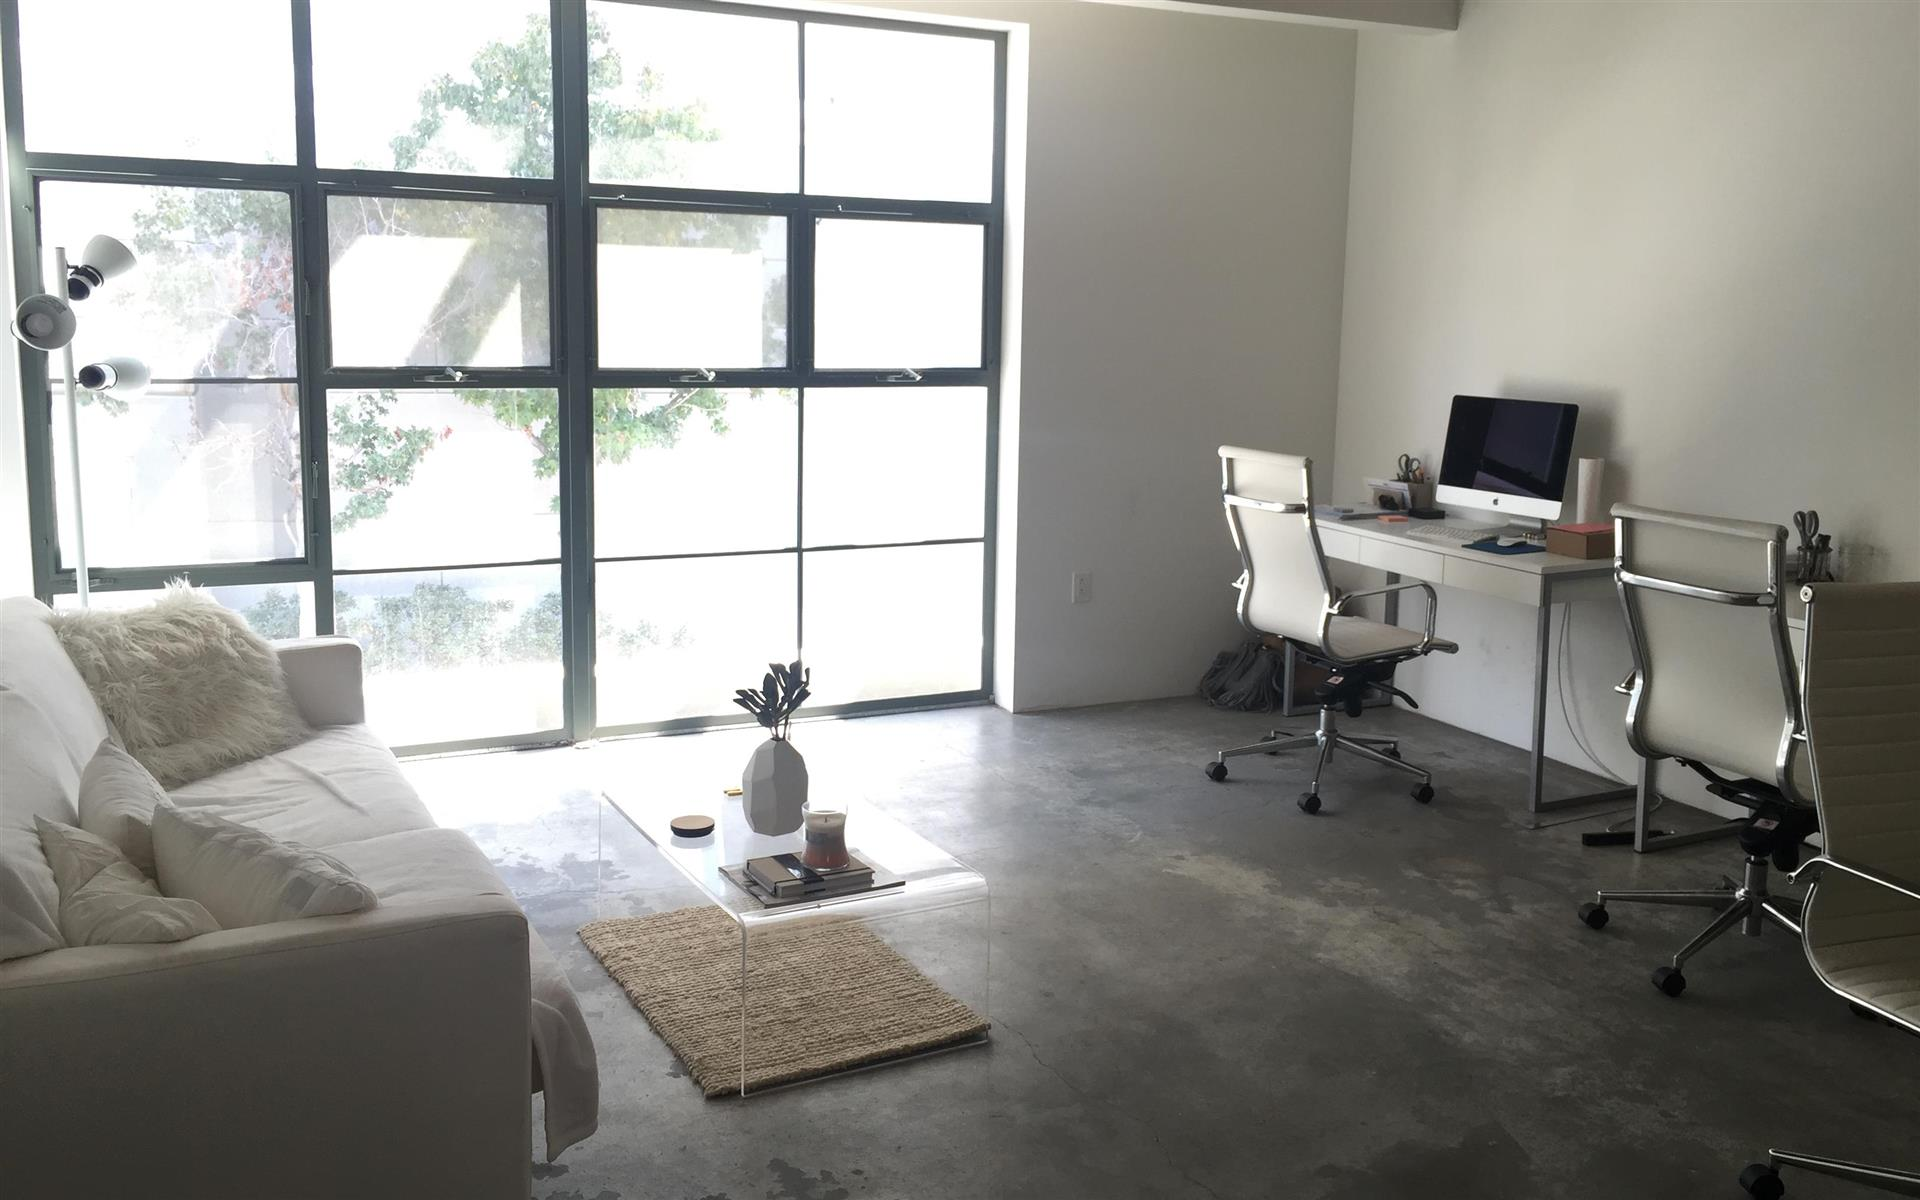 Foray Collective - Suite 112- second floor of creative loft